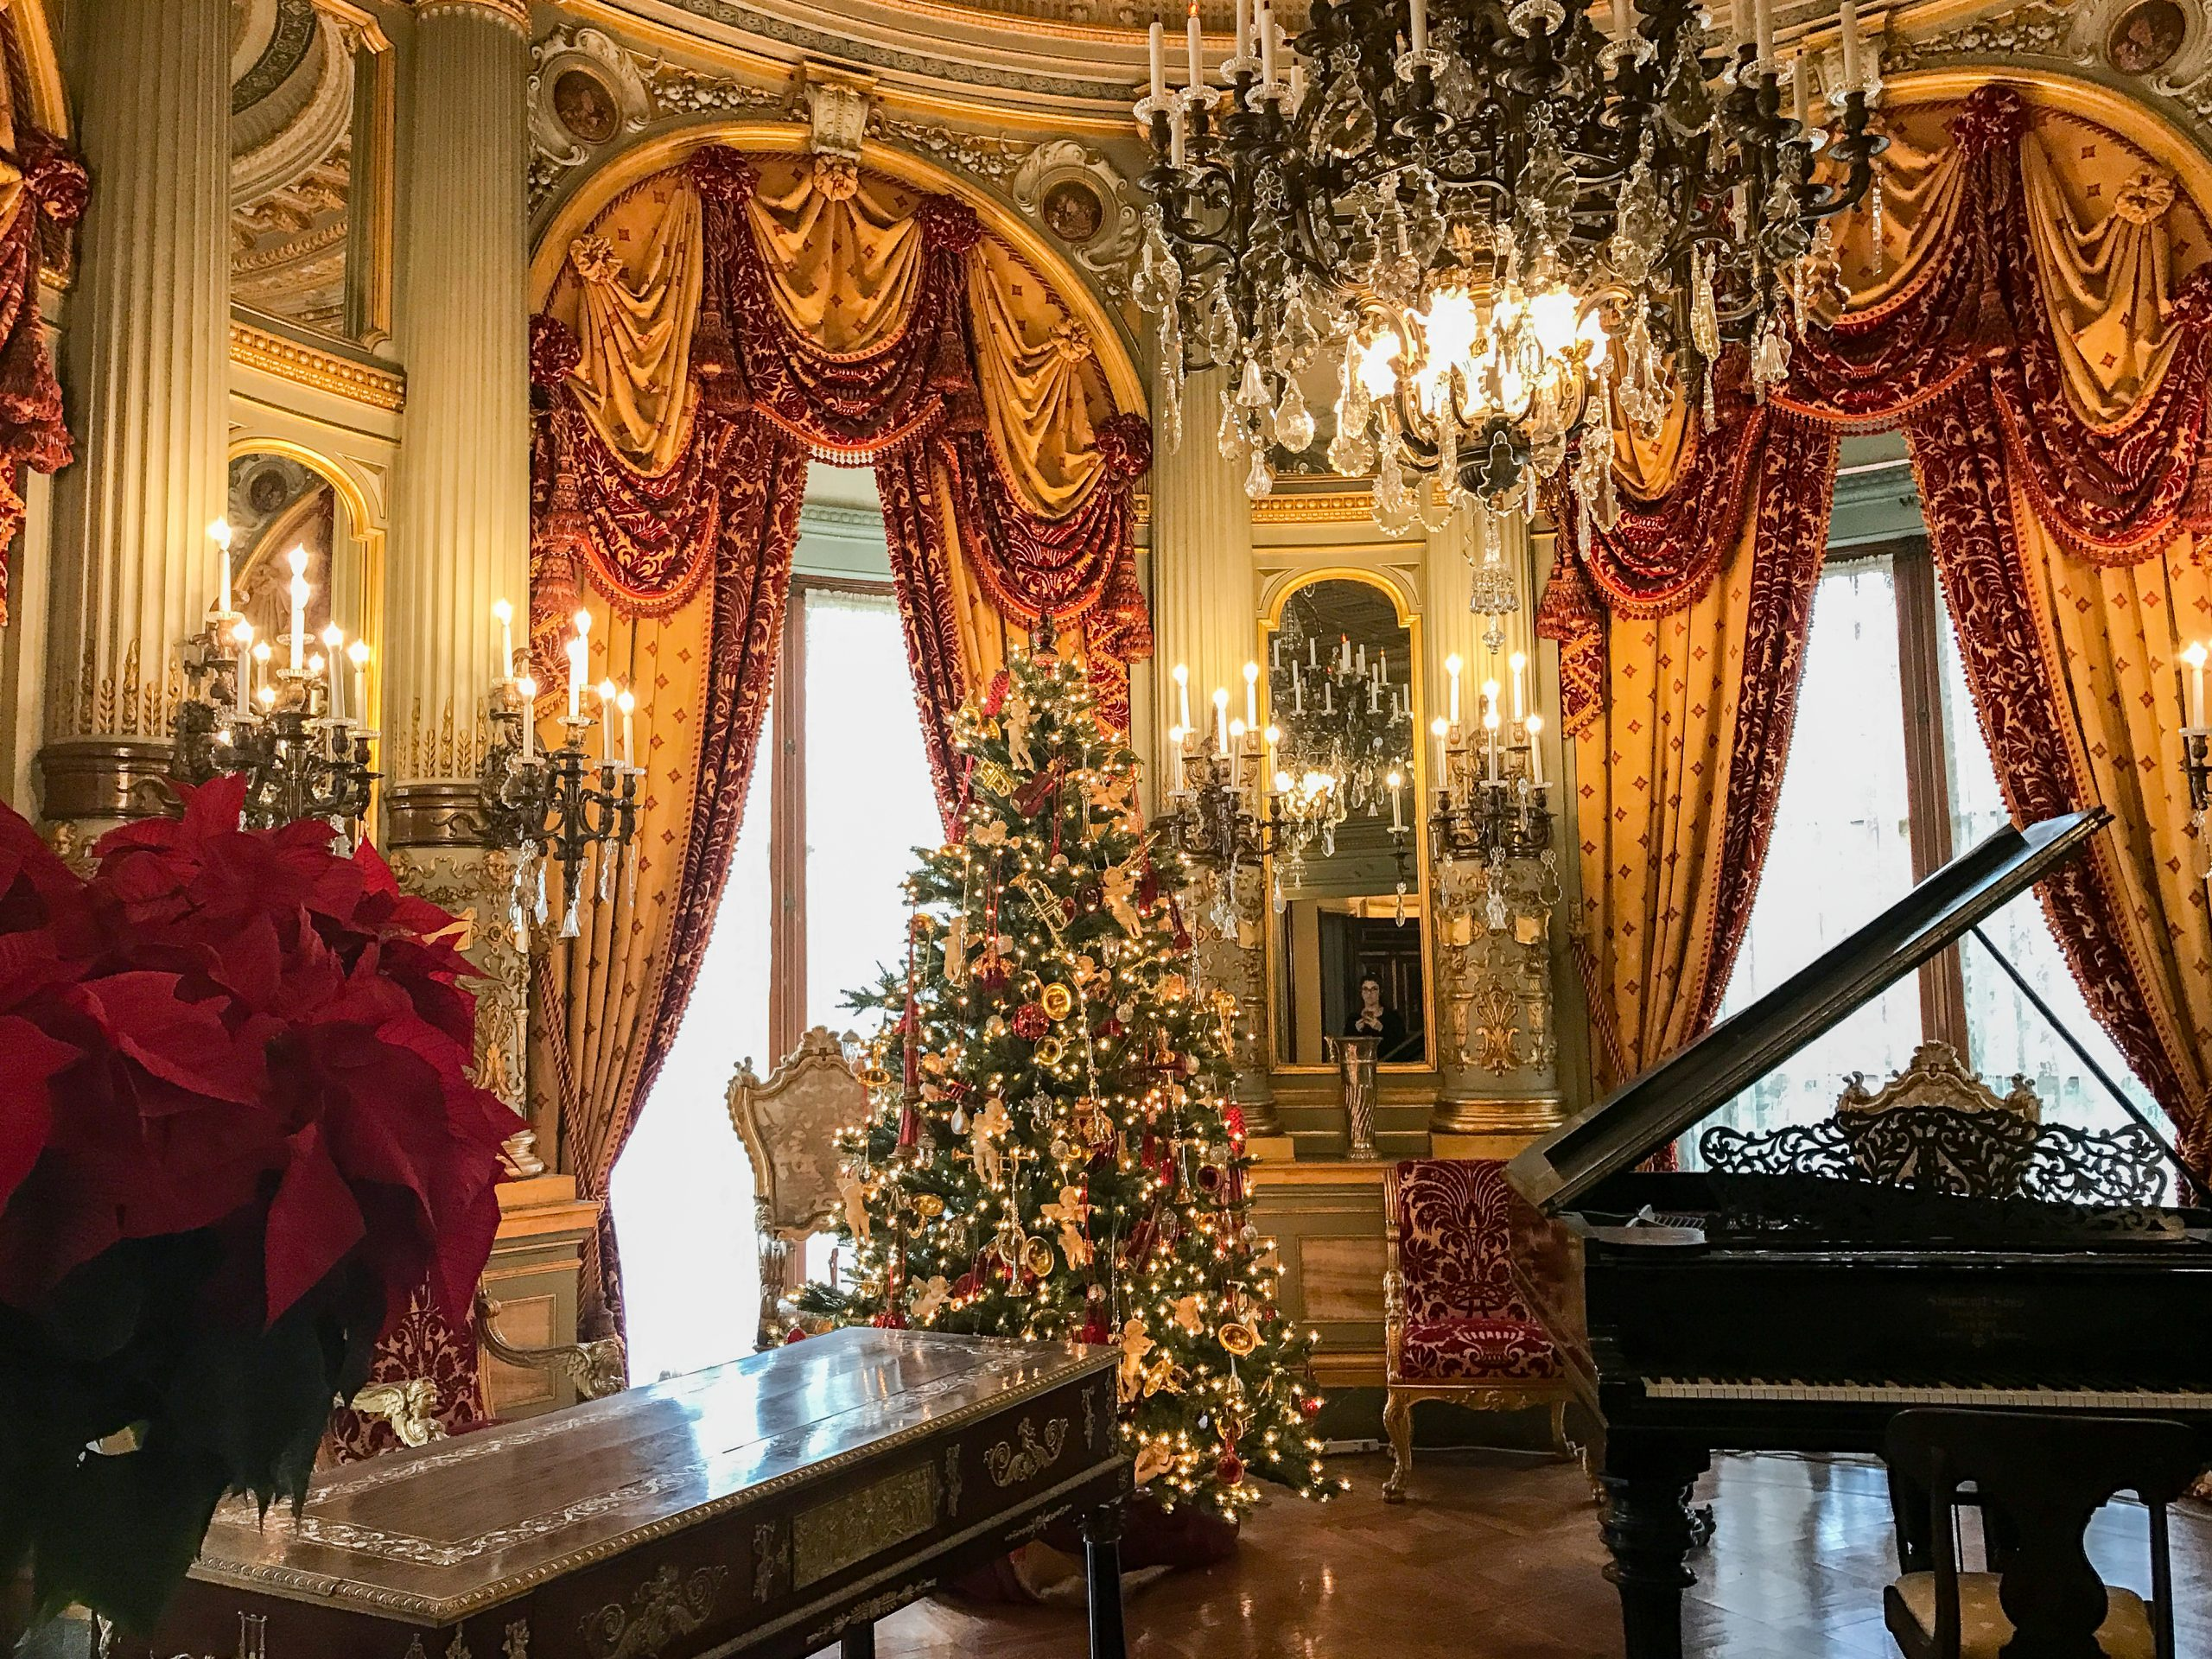 Nyscopba Hackett Blvd 2020 Christmas Bonuses VICTORIAN CHRISTMAS AT THE NEWPORT MANSIONS: DECEMBER 5, 2020